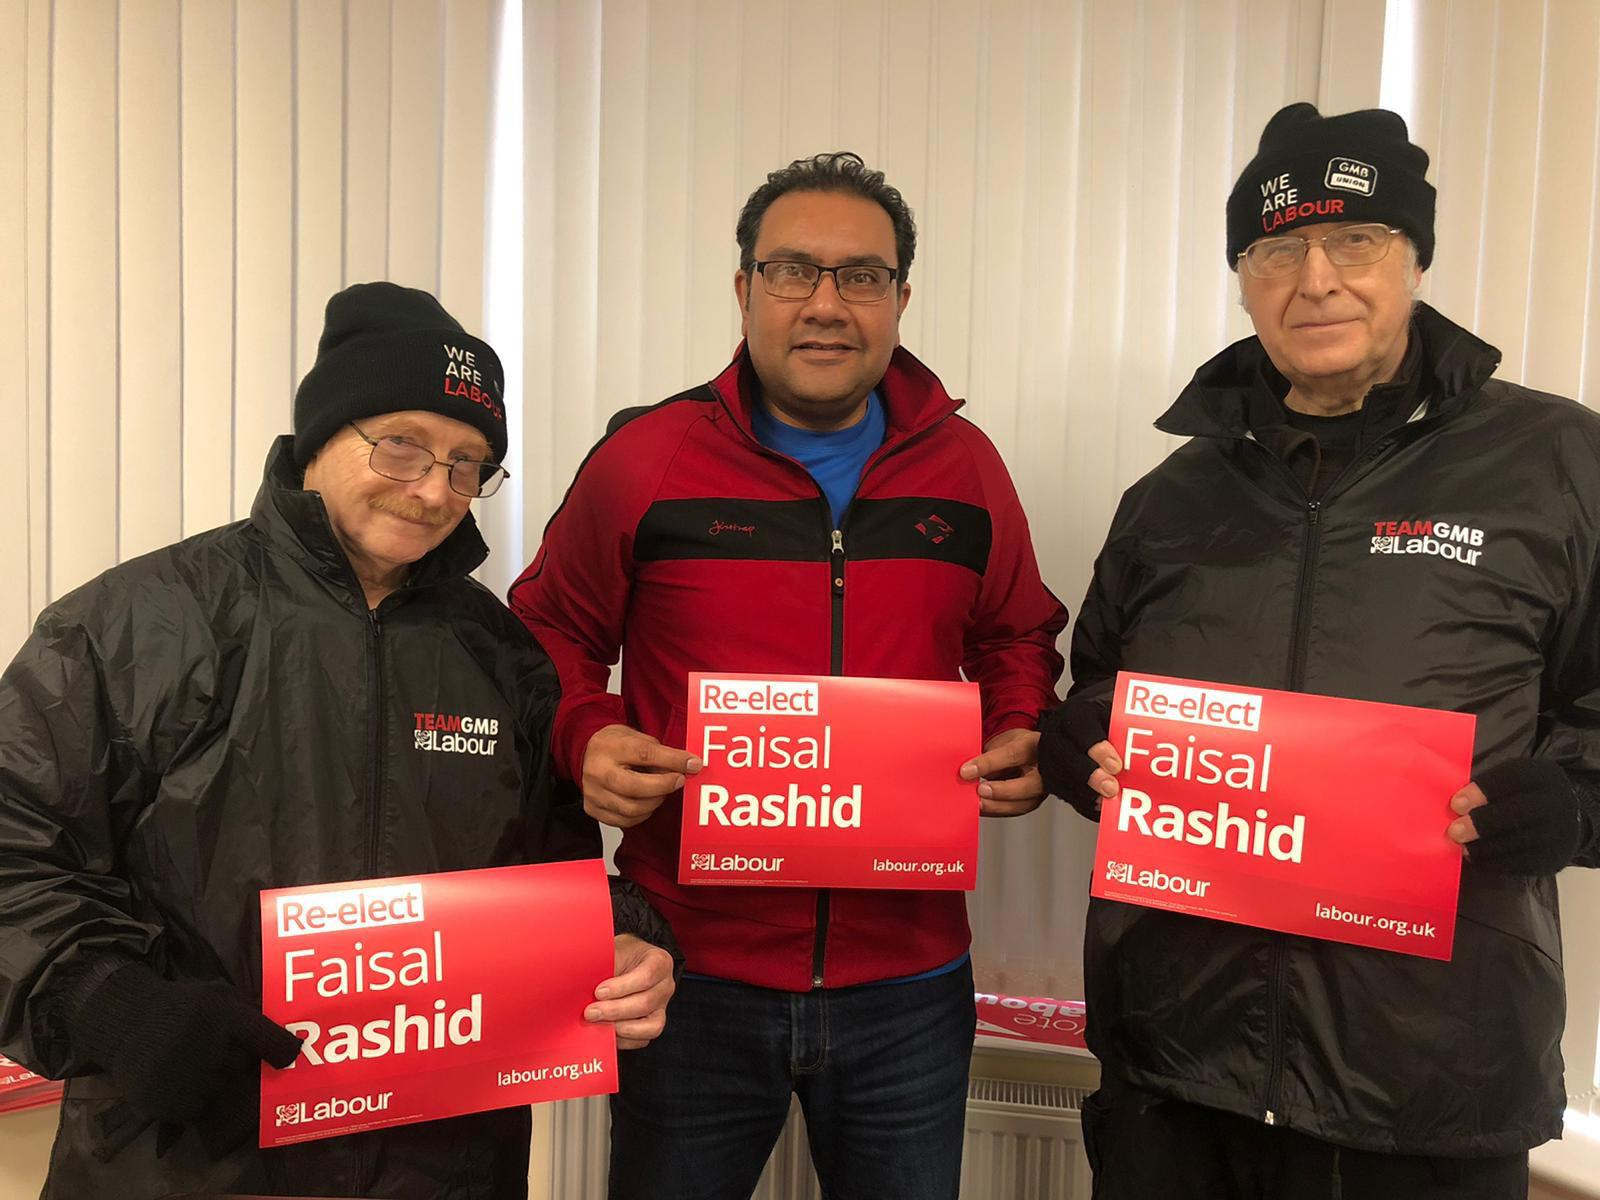 Mian Faisal Rashid (born 6 September 1972) is a British Labour Party politician. He was the Member of Parliament (MP) for Warrington South.